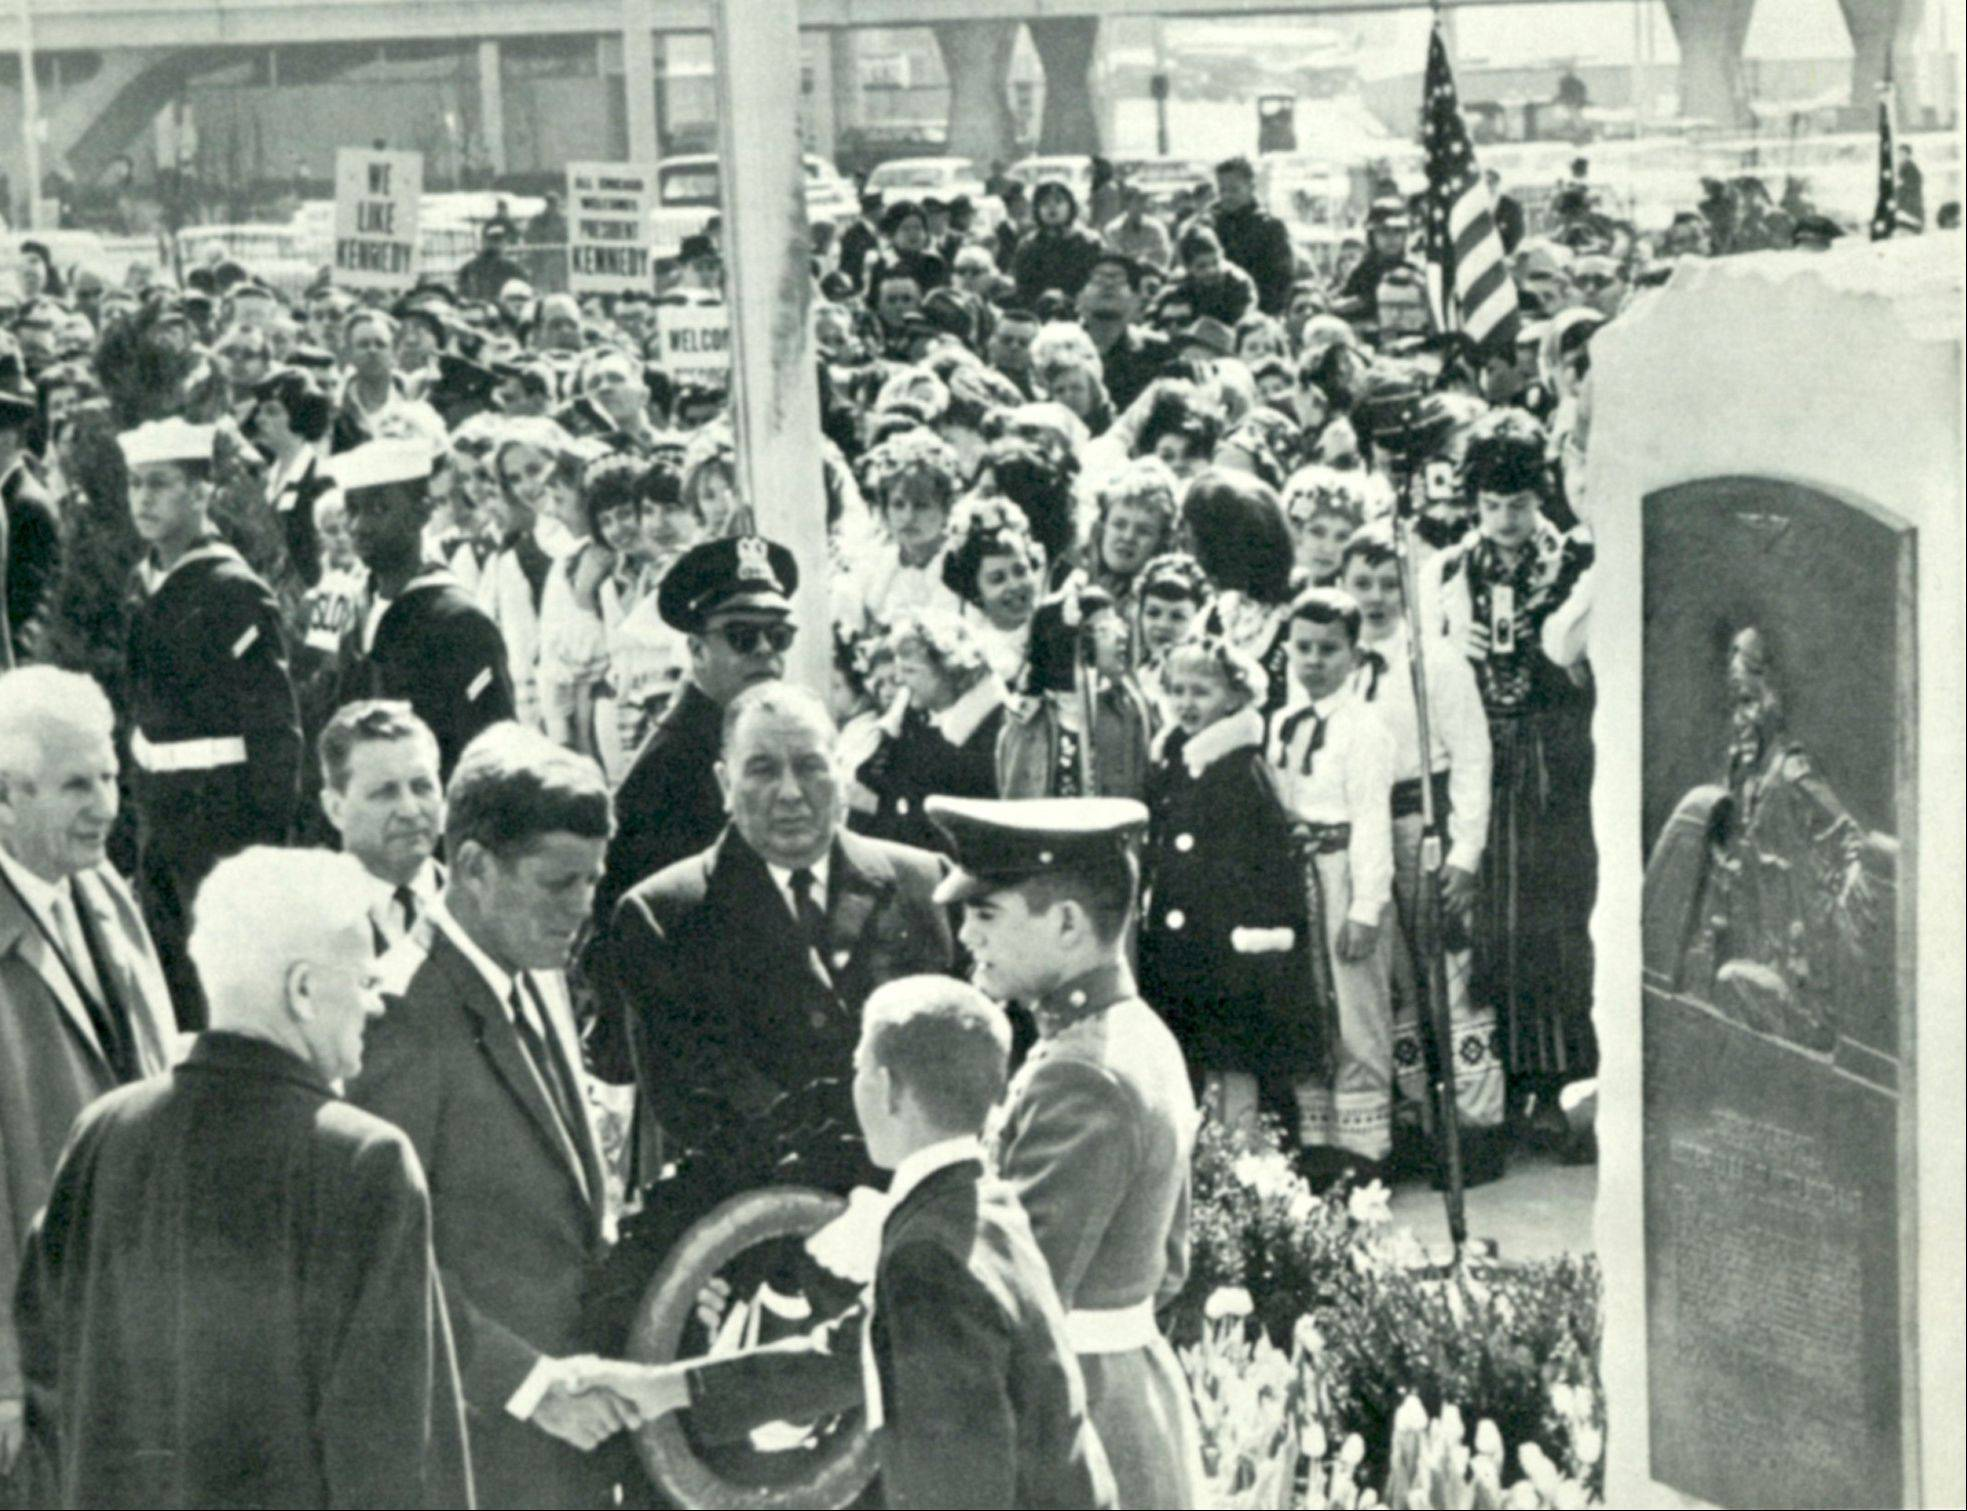 President John F. Kennedy formally dedicates what we now know as O'Hare International Airport in 1963.